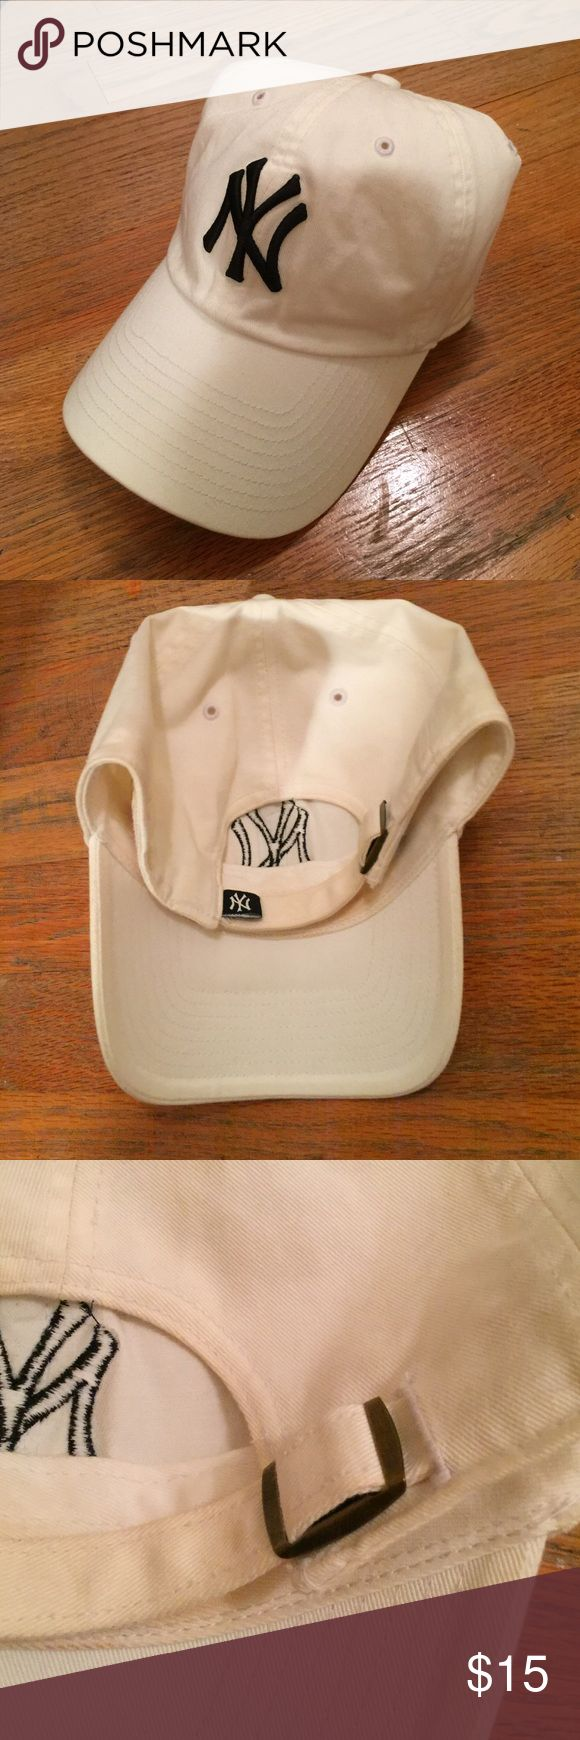 Yankees hat New York Yankees Official Hat. Adjustable fitting. Worn once. Slight make up on inside of hat. Smoke free home! Accessories Hats